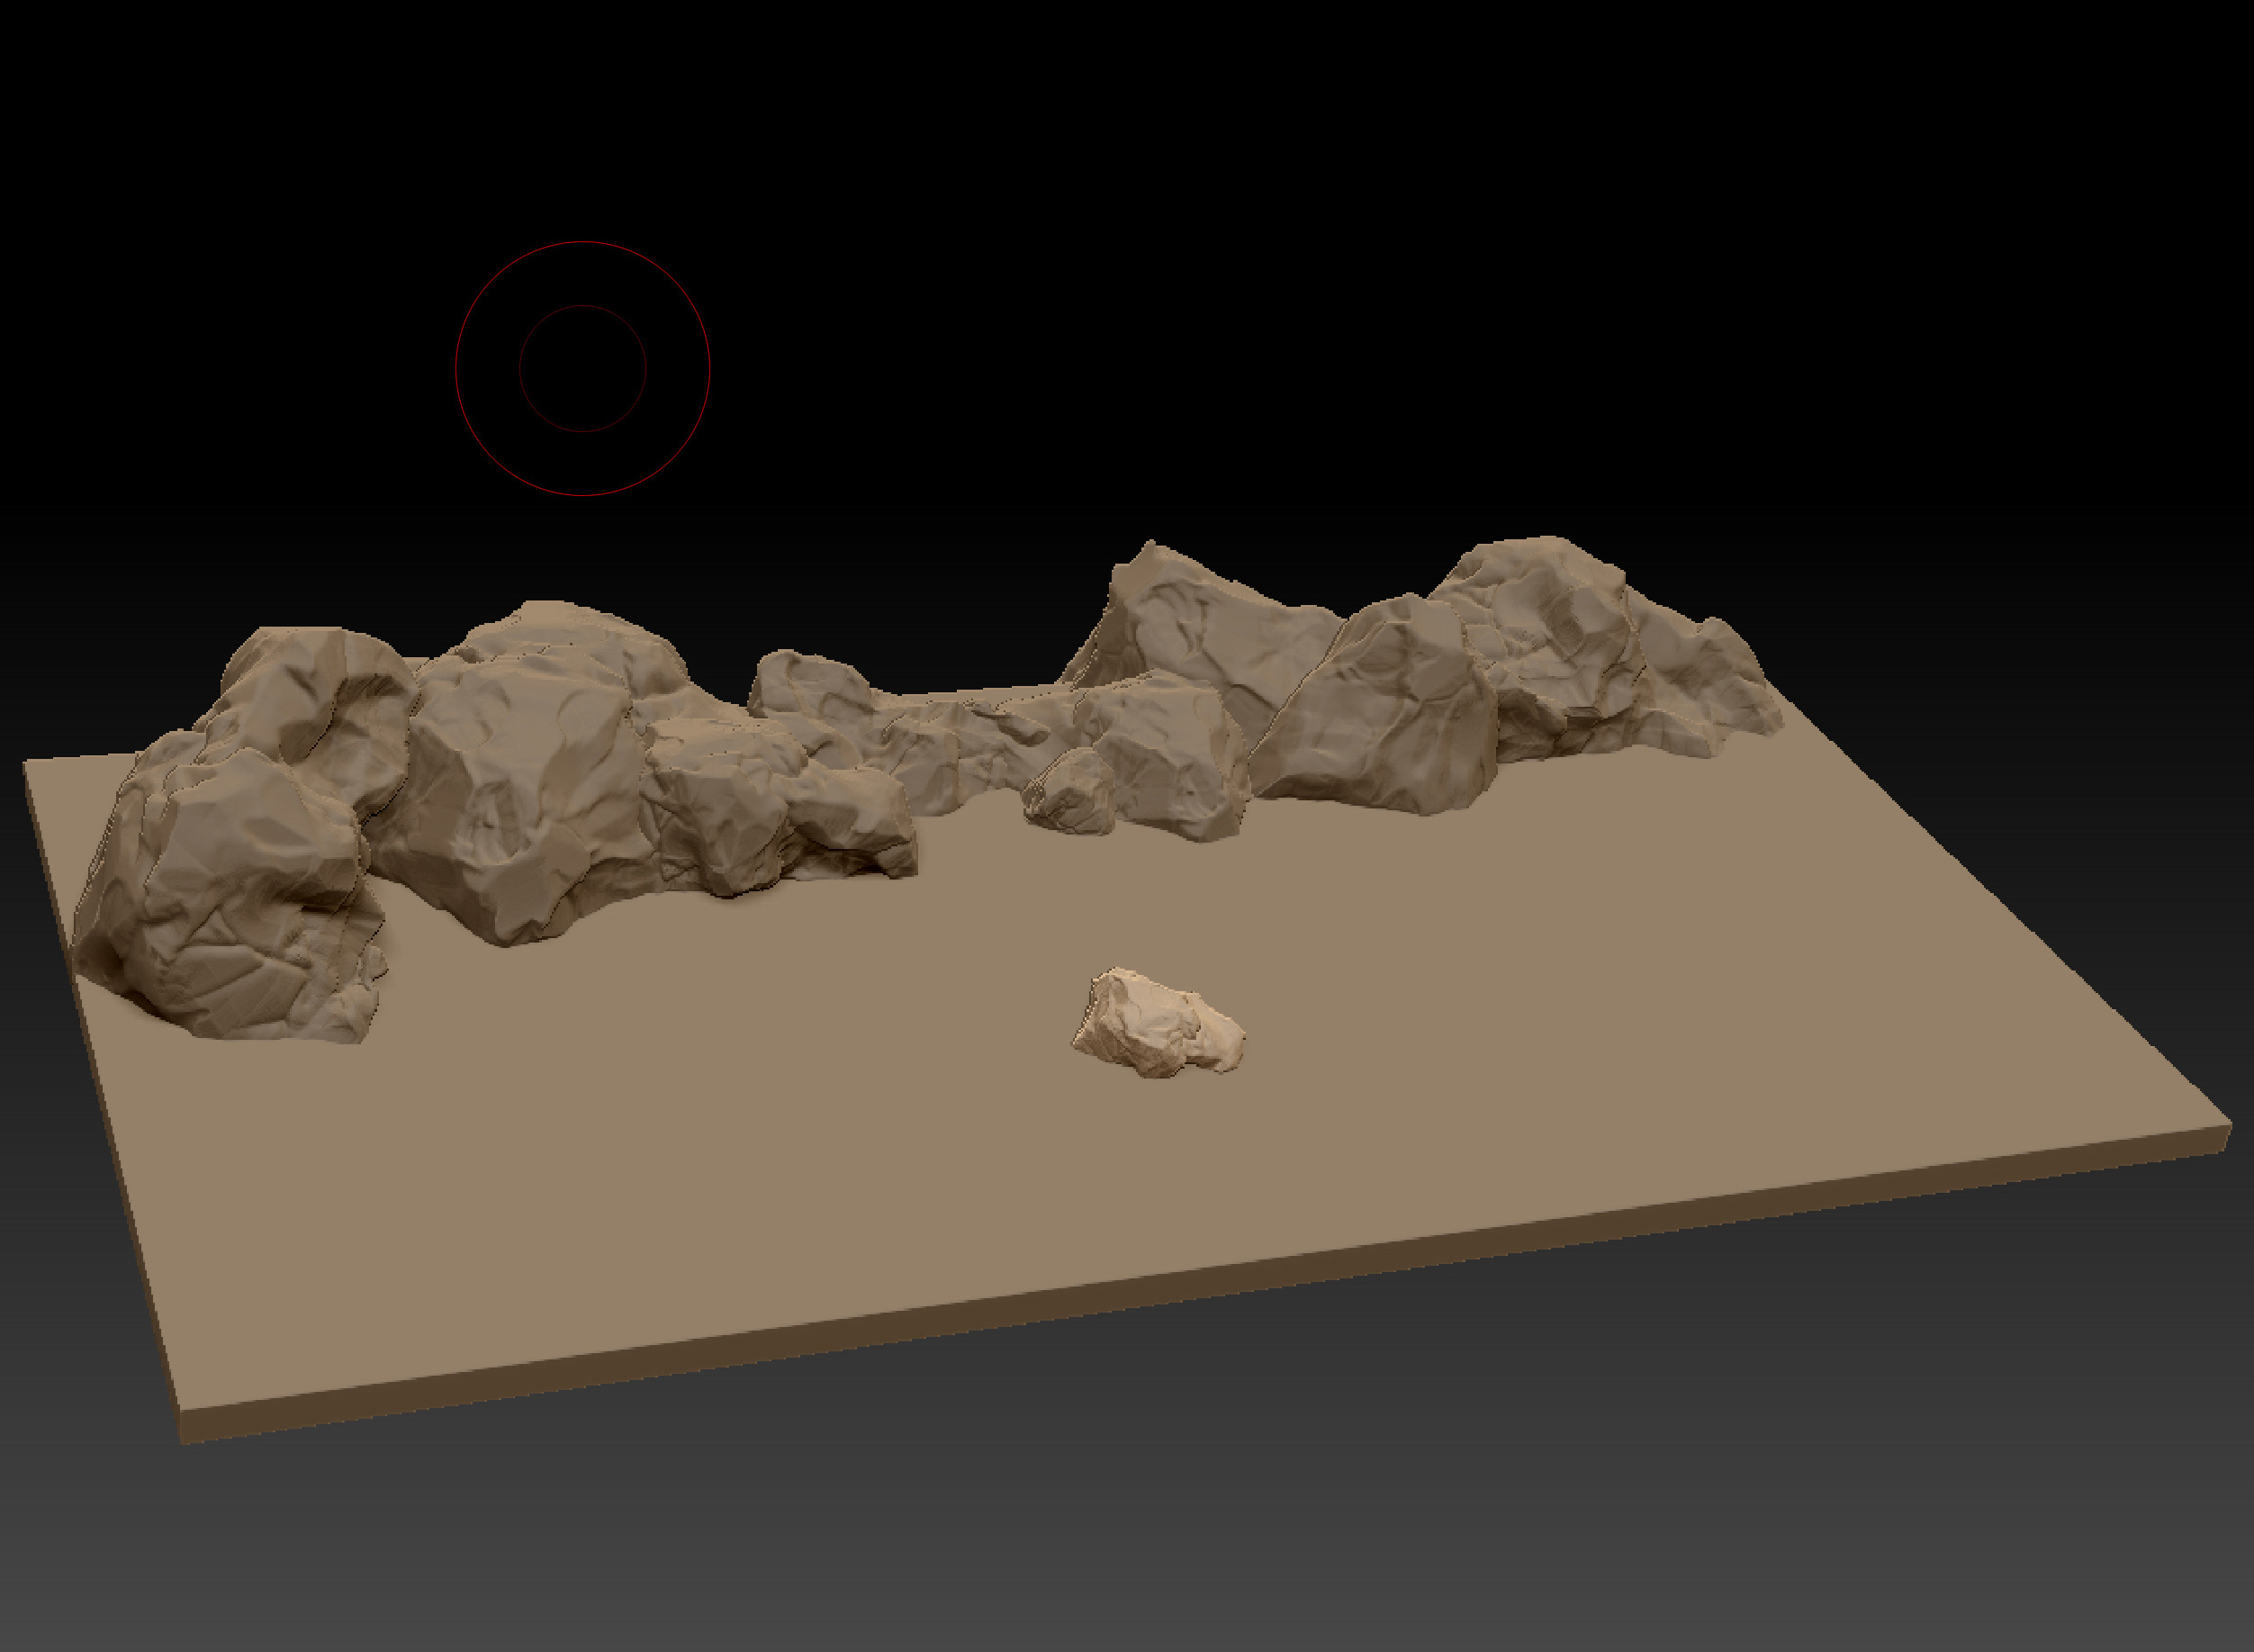 Arrangement in Zbrush (its all one and the same rock)